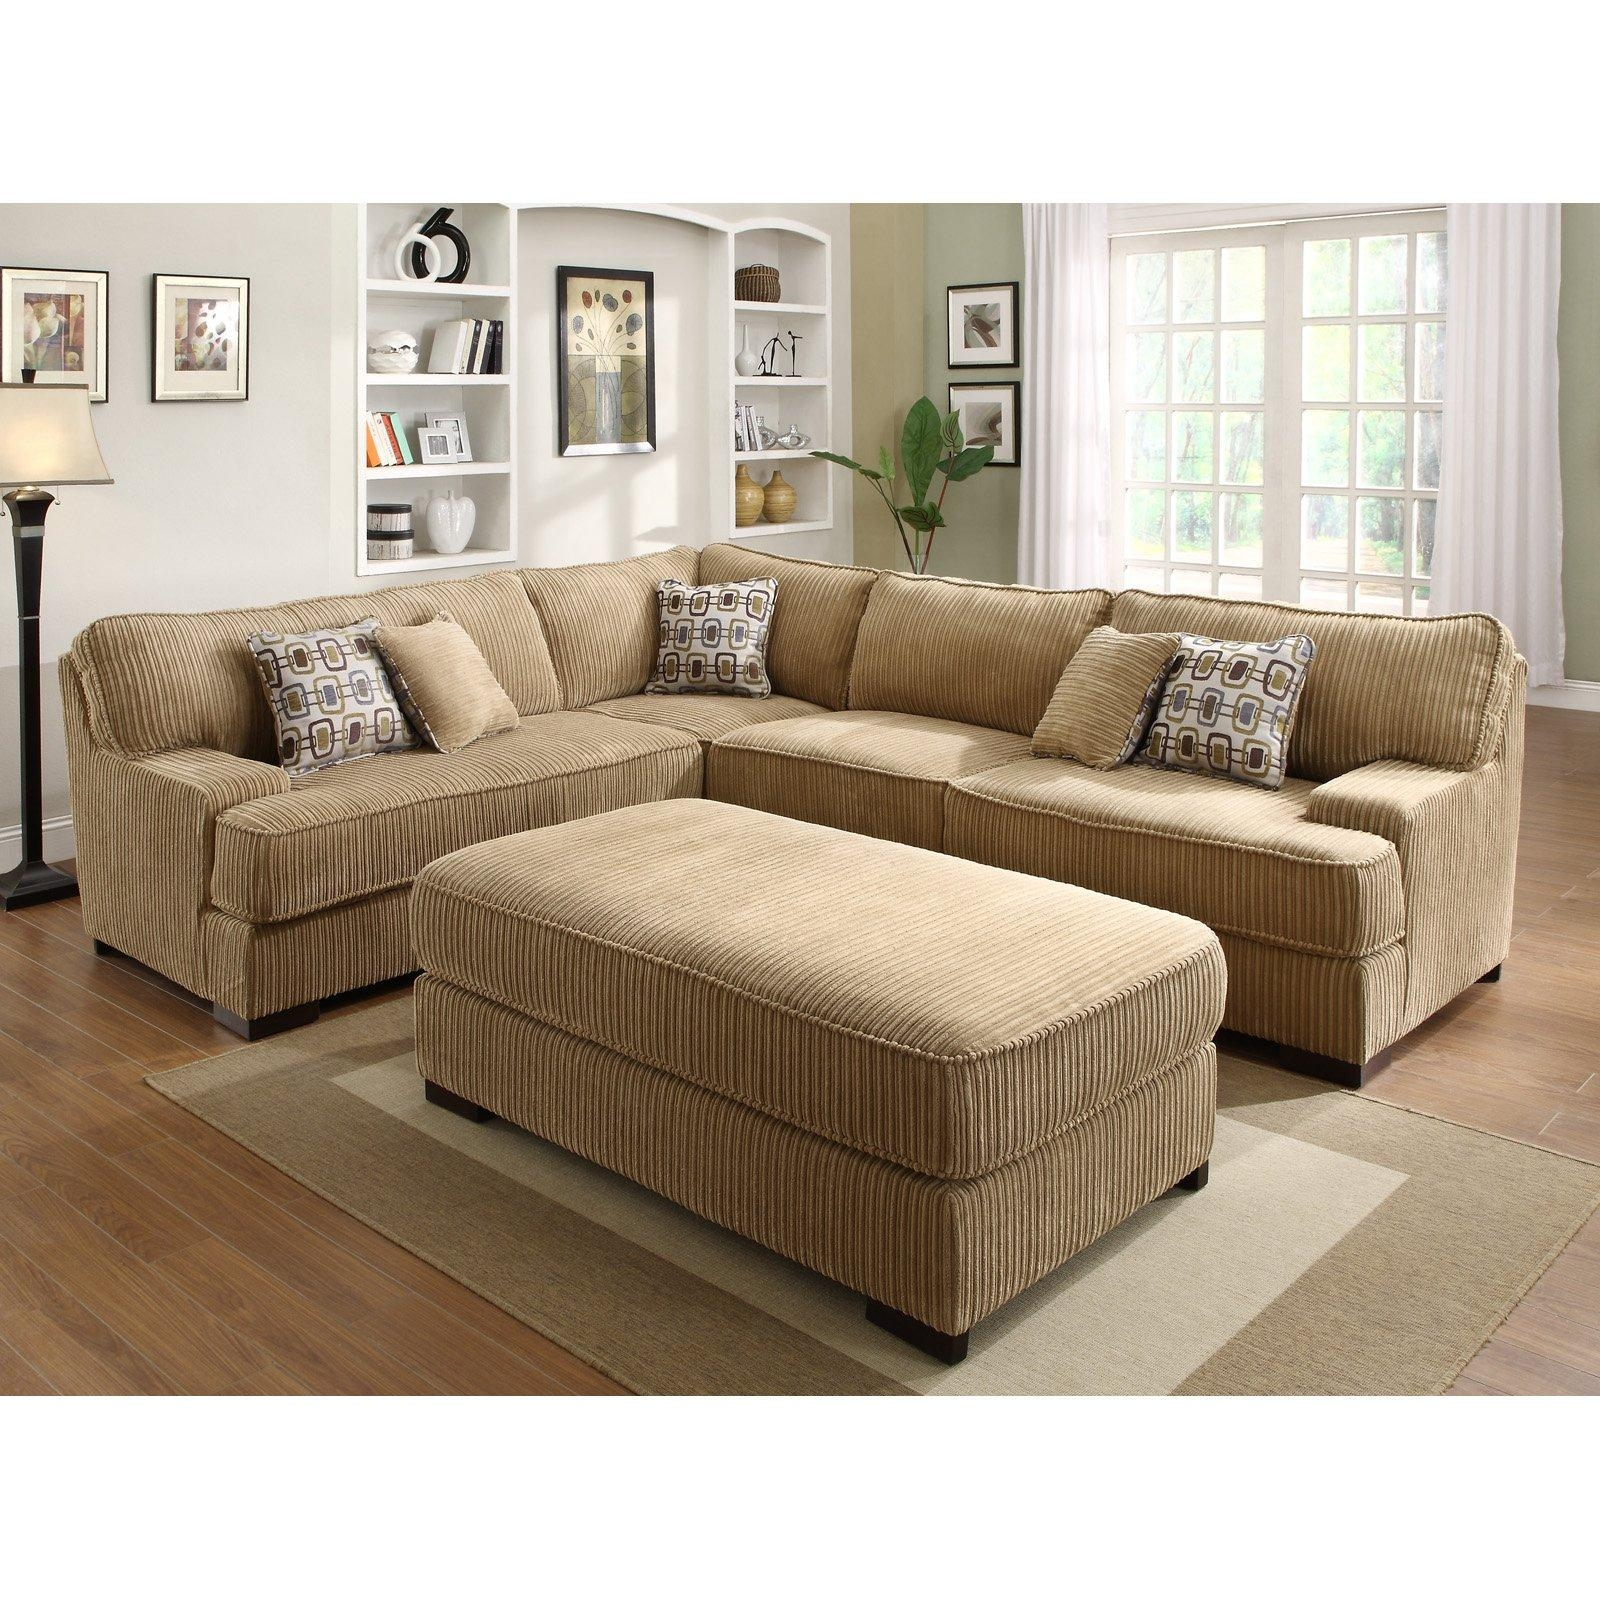 Decor: Deep Sectional Couch And Corduroy Sectional Sofa Throughout Leather And Chenille Sectional (Image 5 of 20)